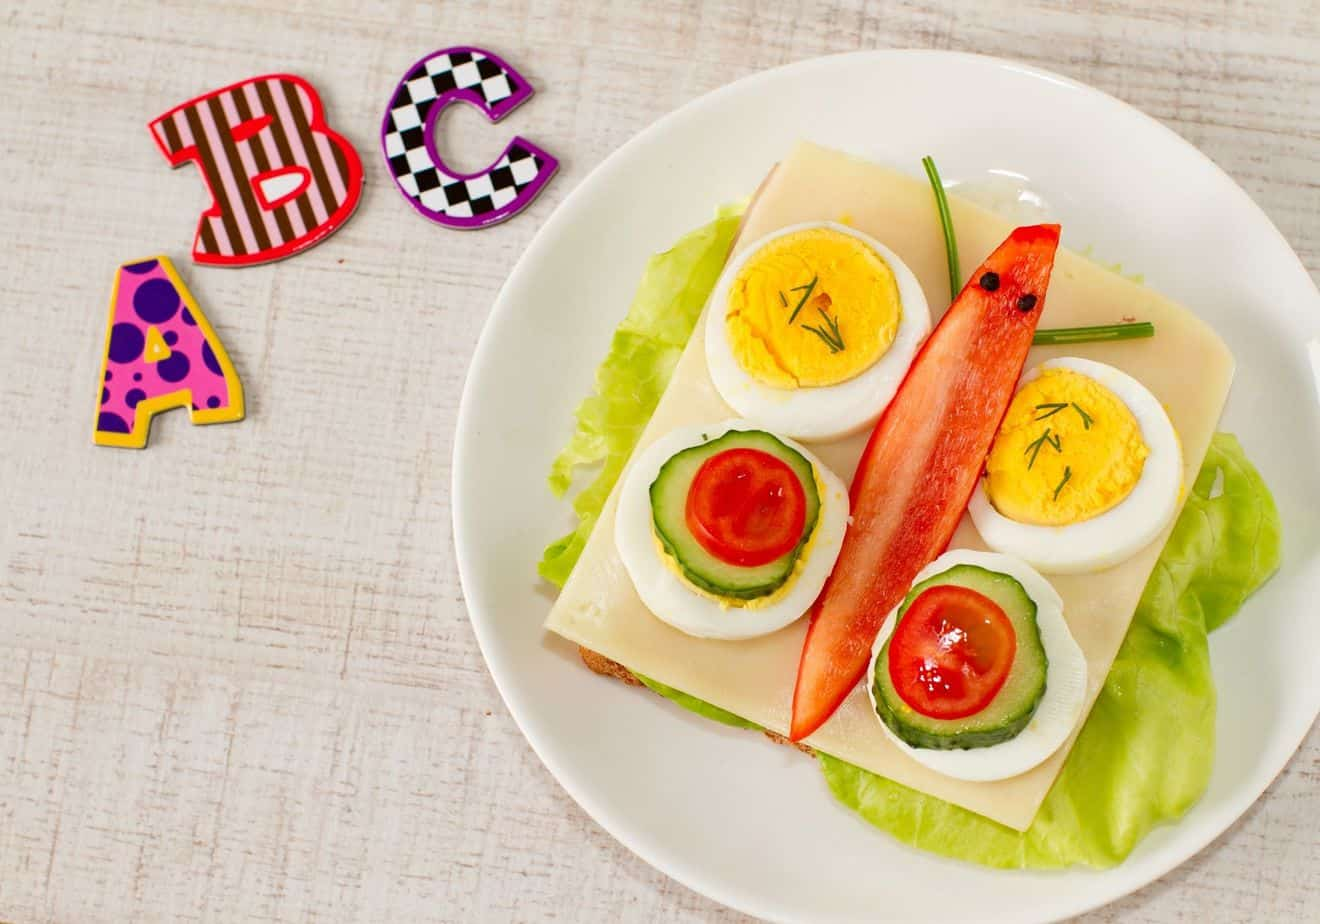 Summer Activity For Toddlers - Indoor Picnic